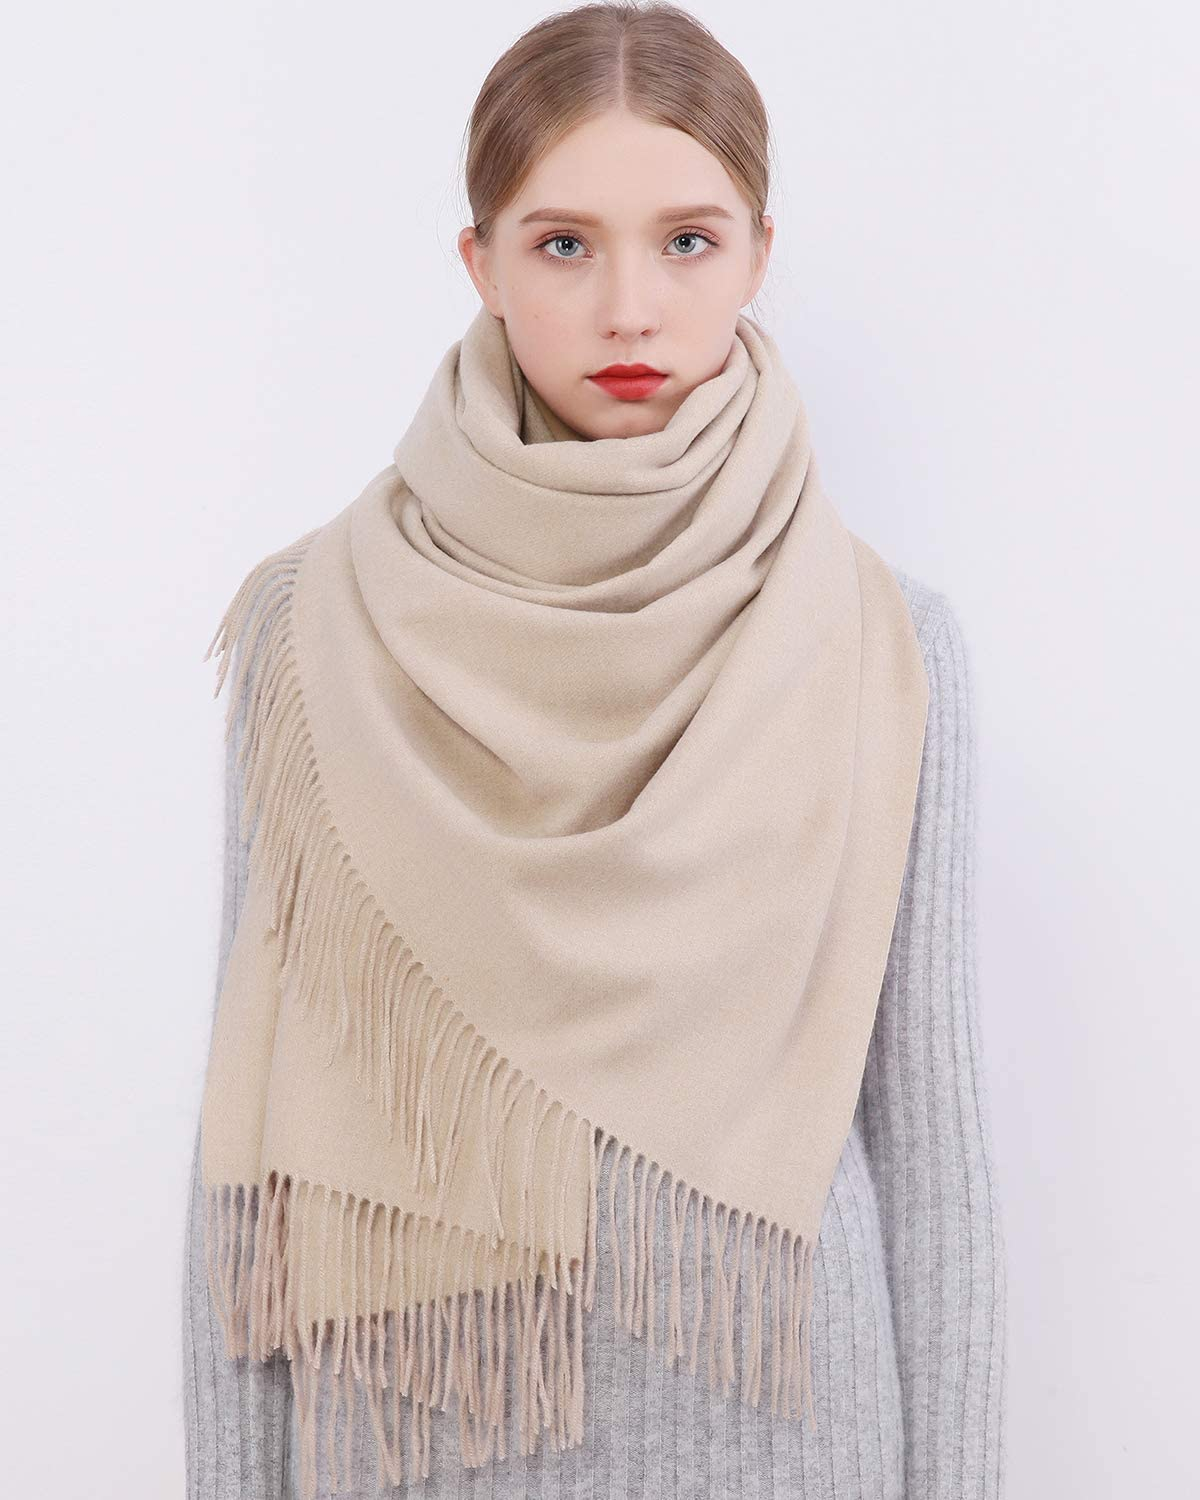 Women Scarf Pashmina Shawls and Wraps Yellow Long Large Winter More Warm Thicker Scarves Yellow